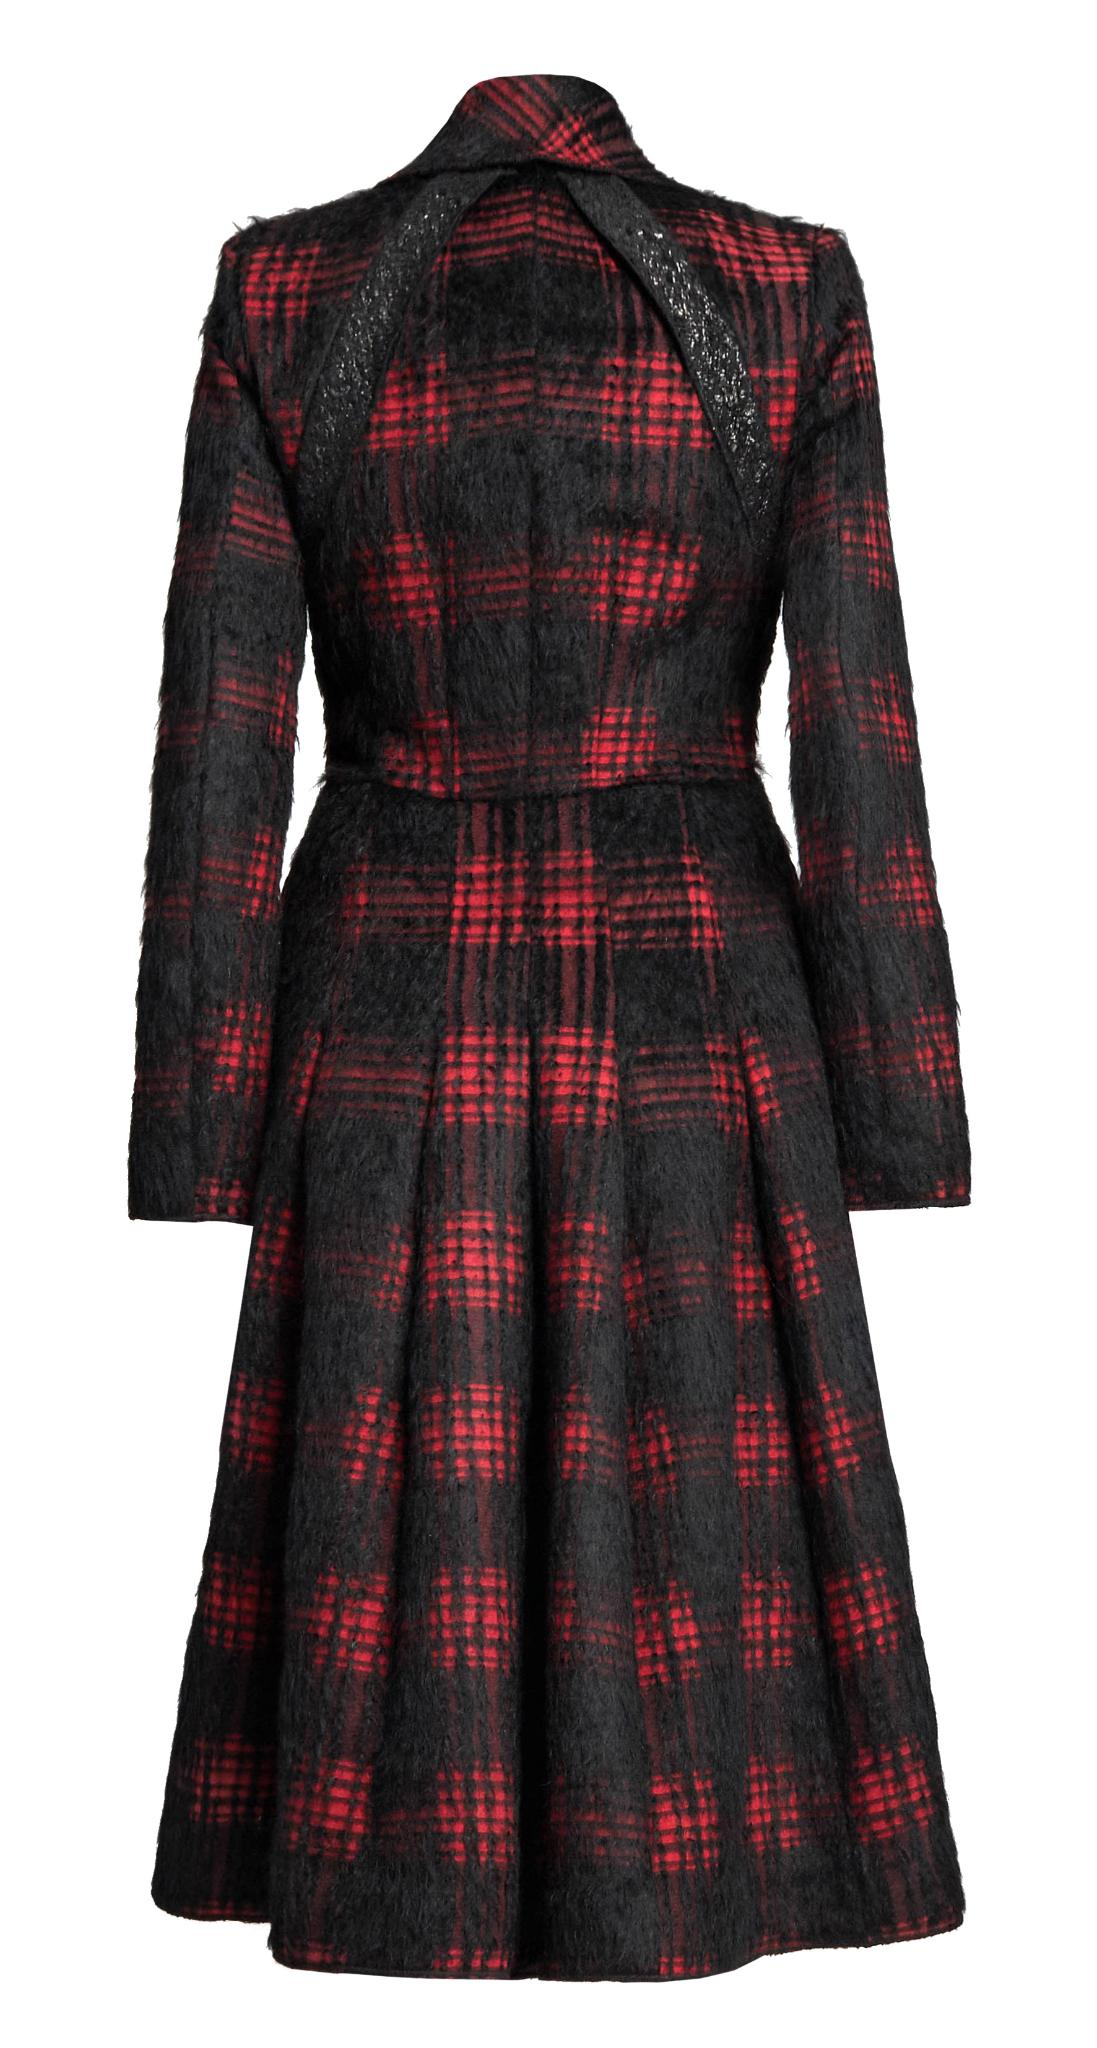 Red and black check wool-blend coat